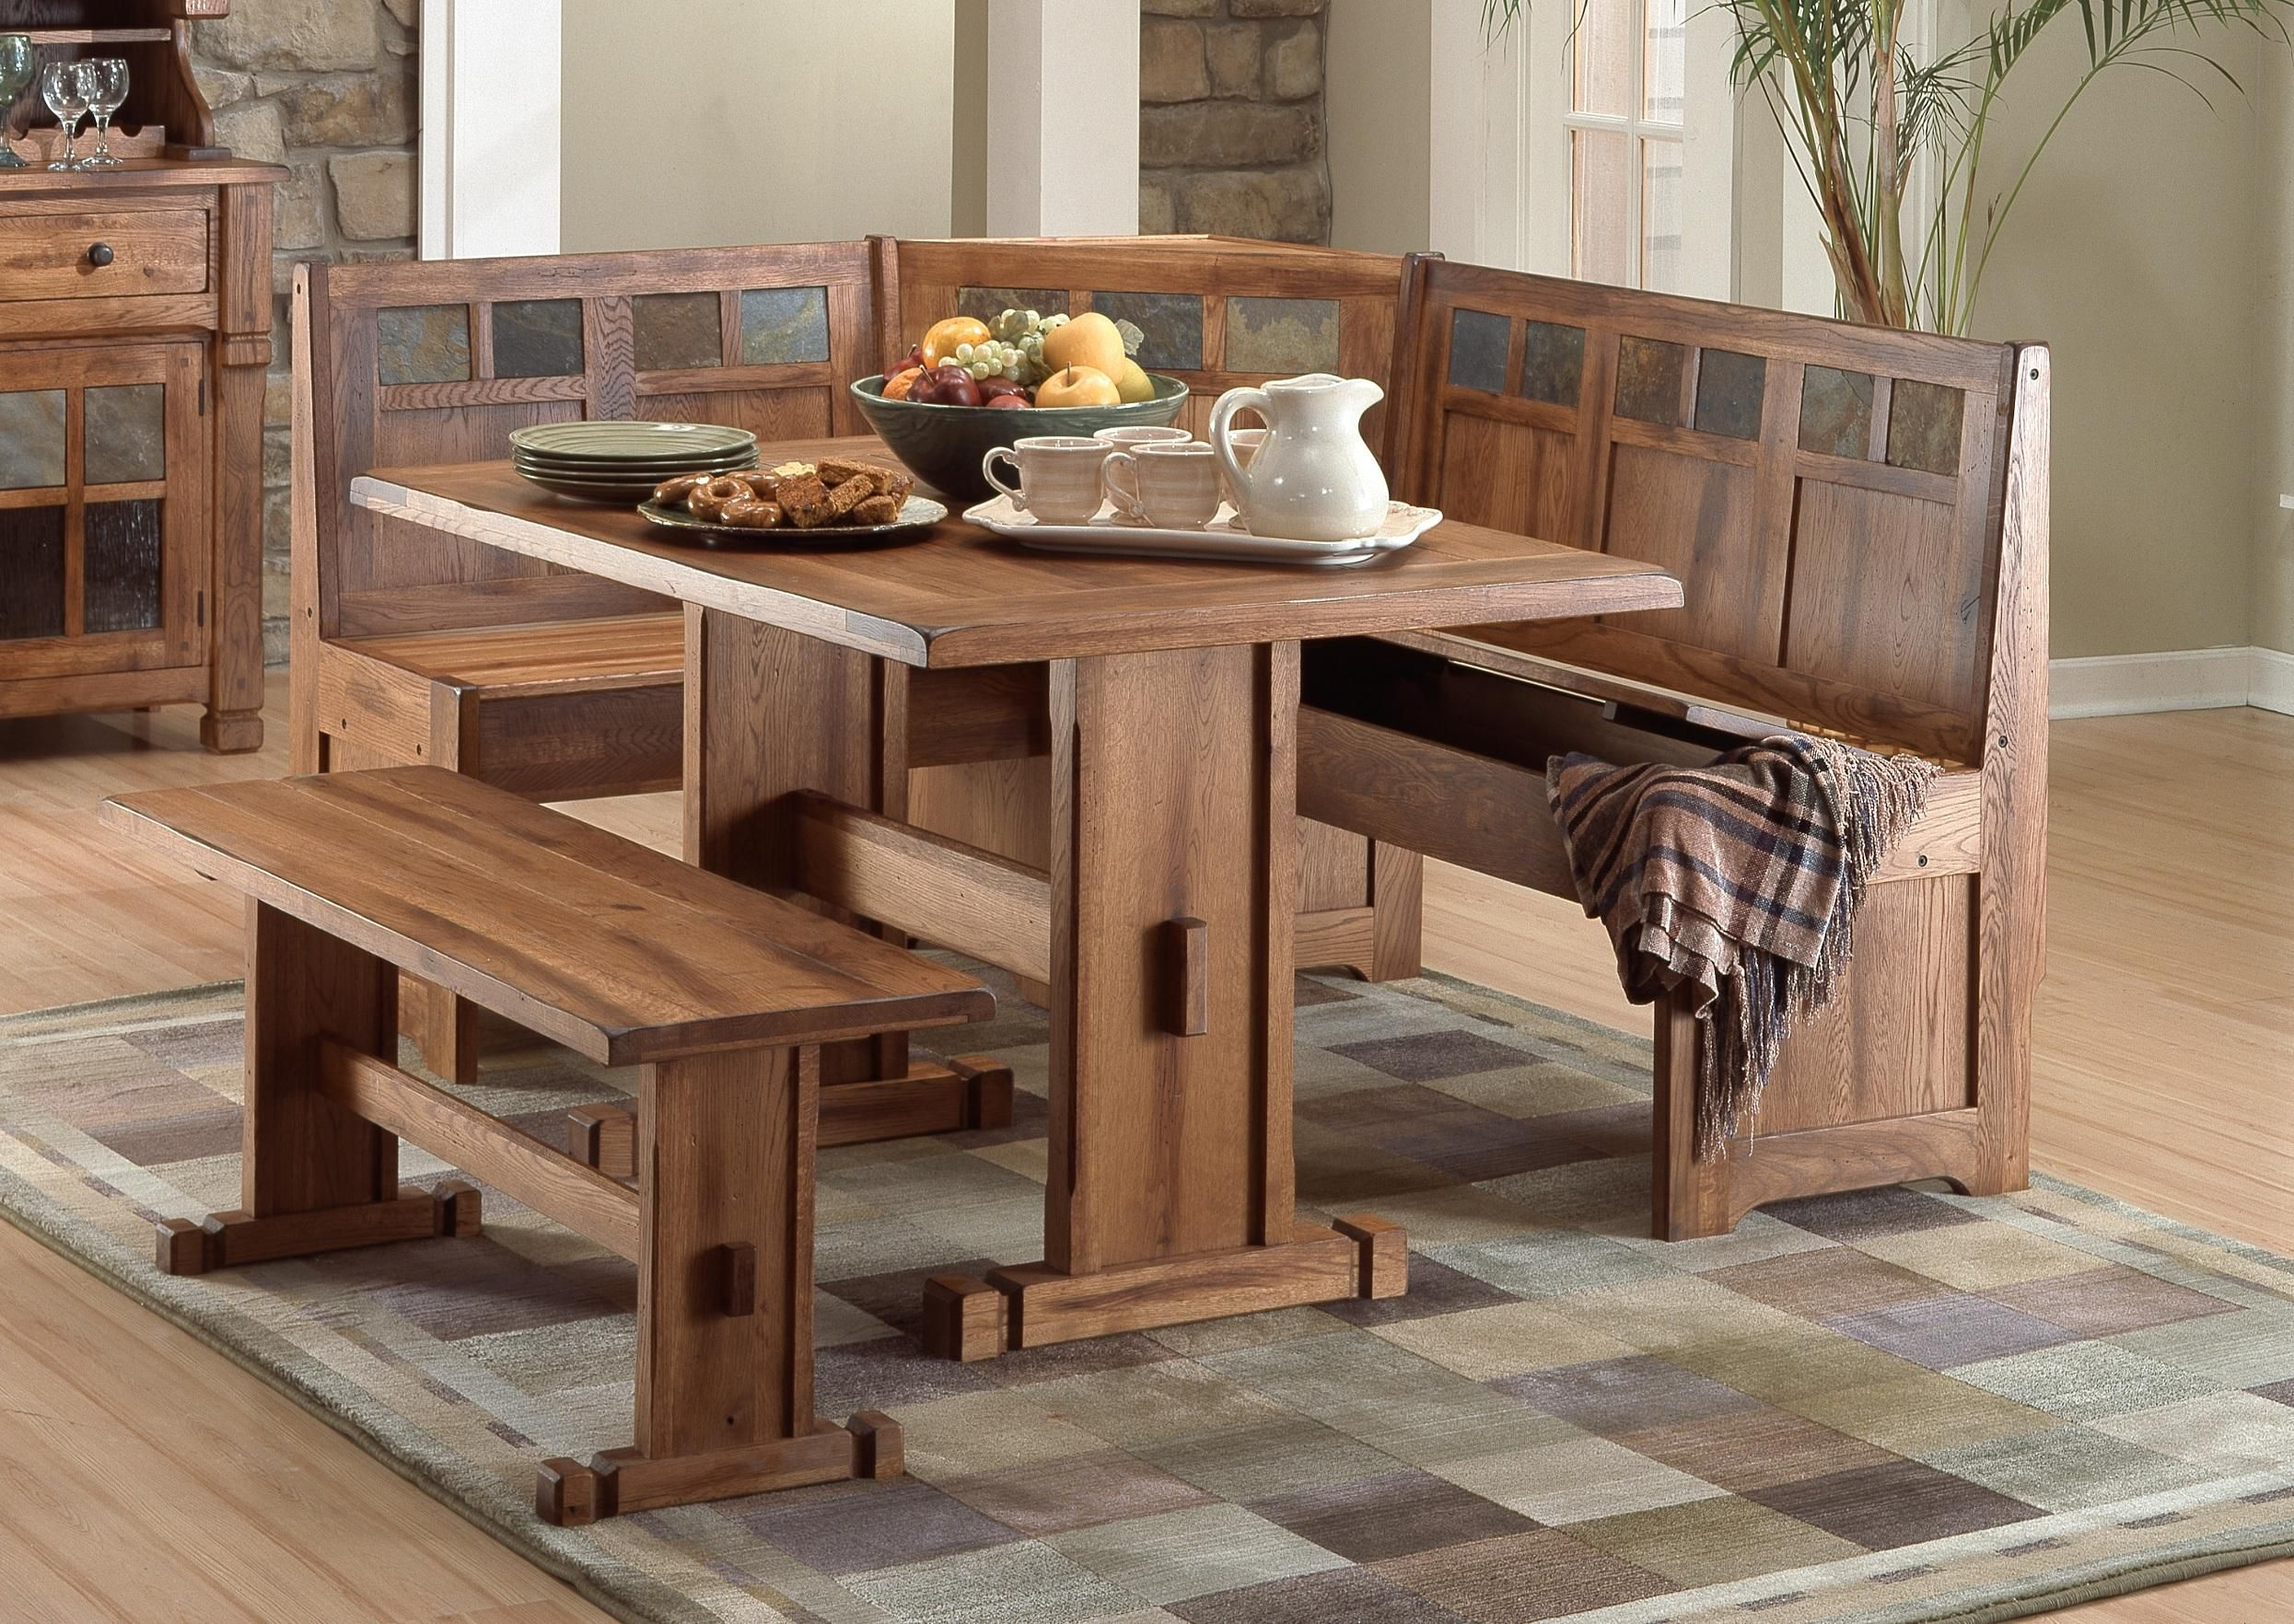 benches dining tables Google Search House Ideas